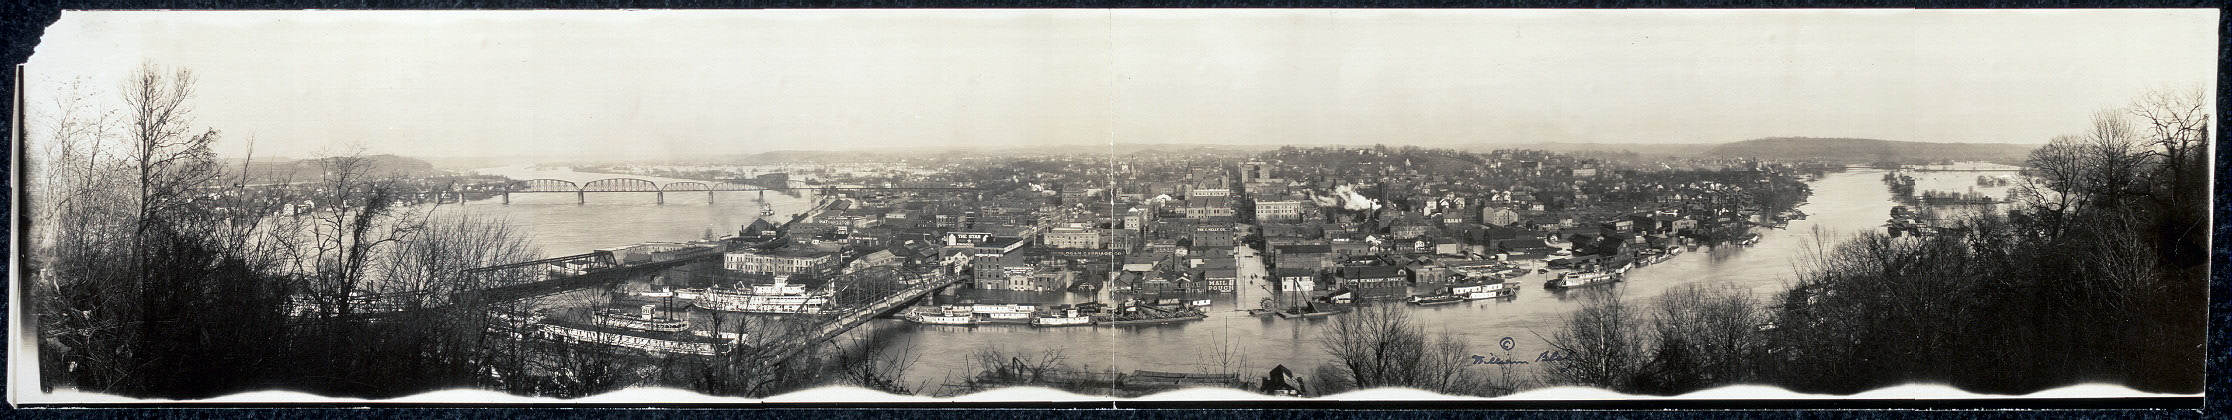 A panorama of the 1913 flood, which was included in a report of the same year by the U.S. Geological Survey (see links below). Library of Congress.